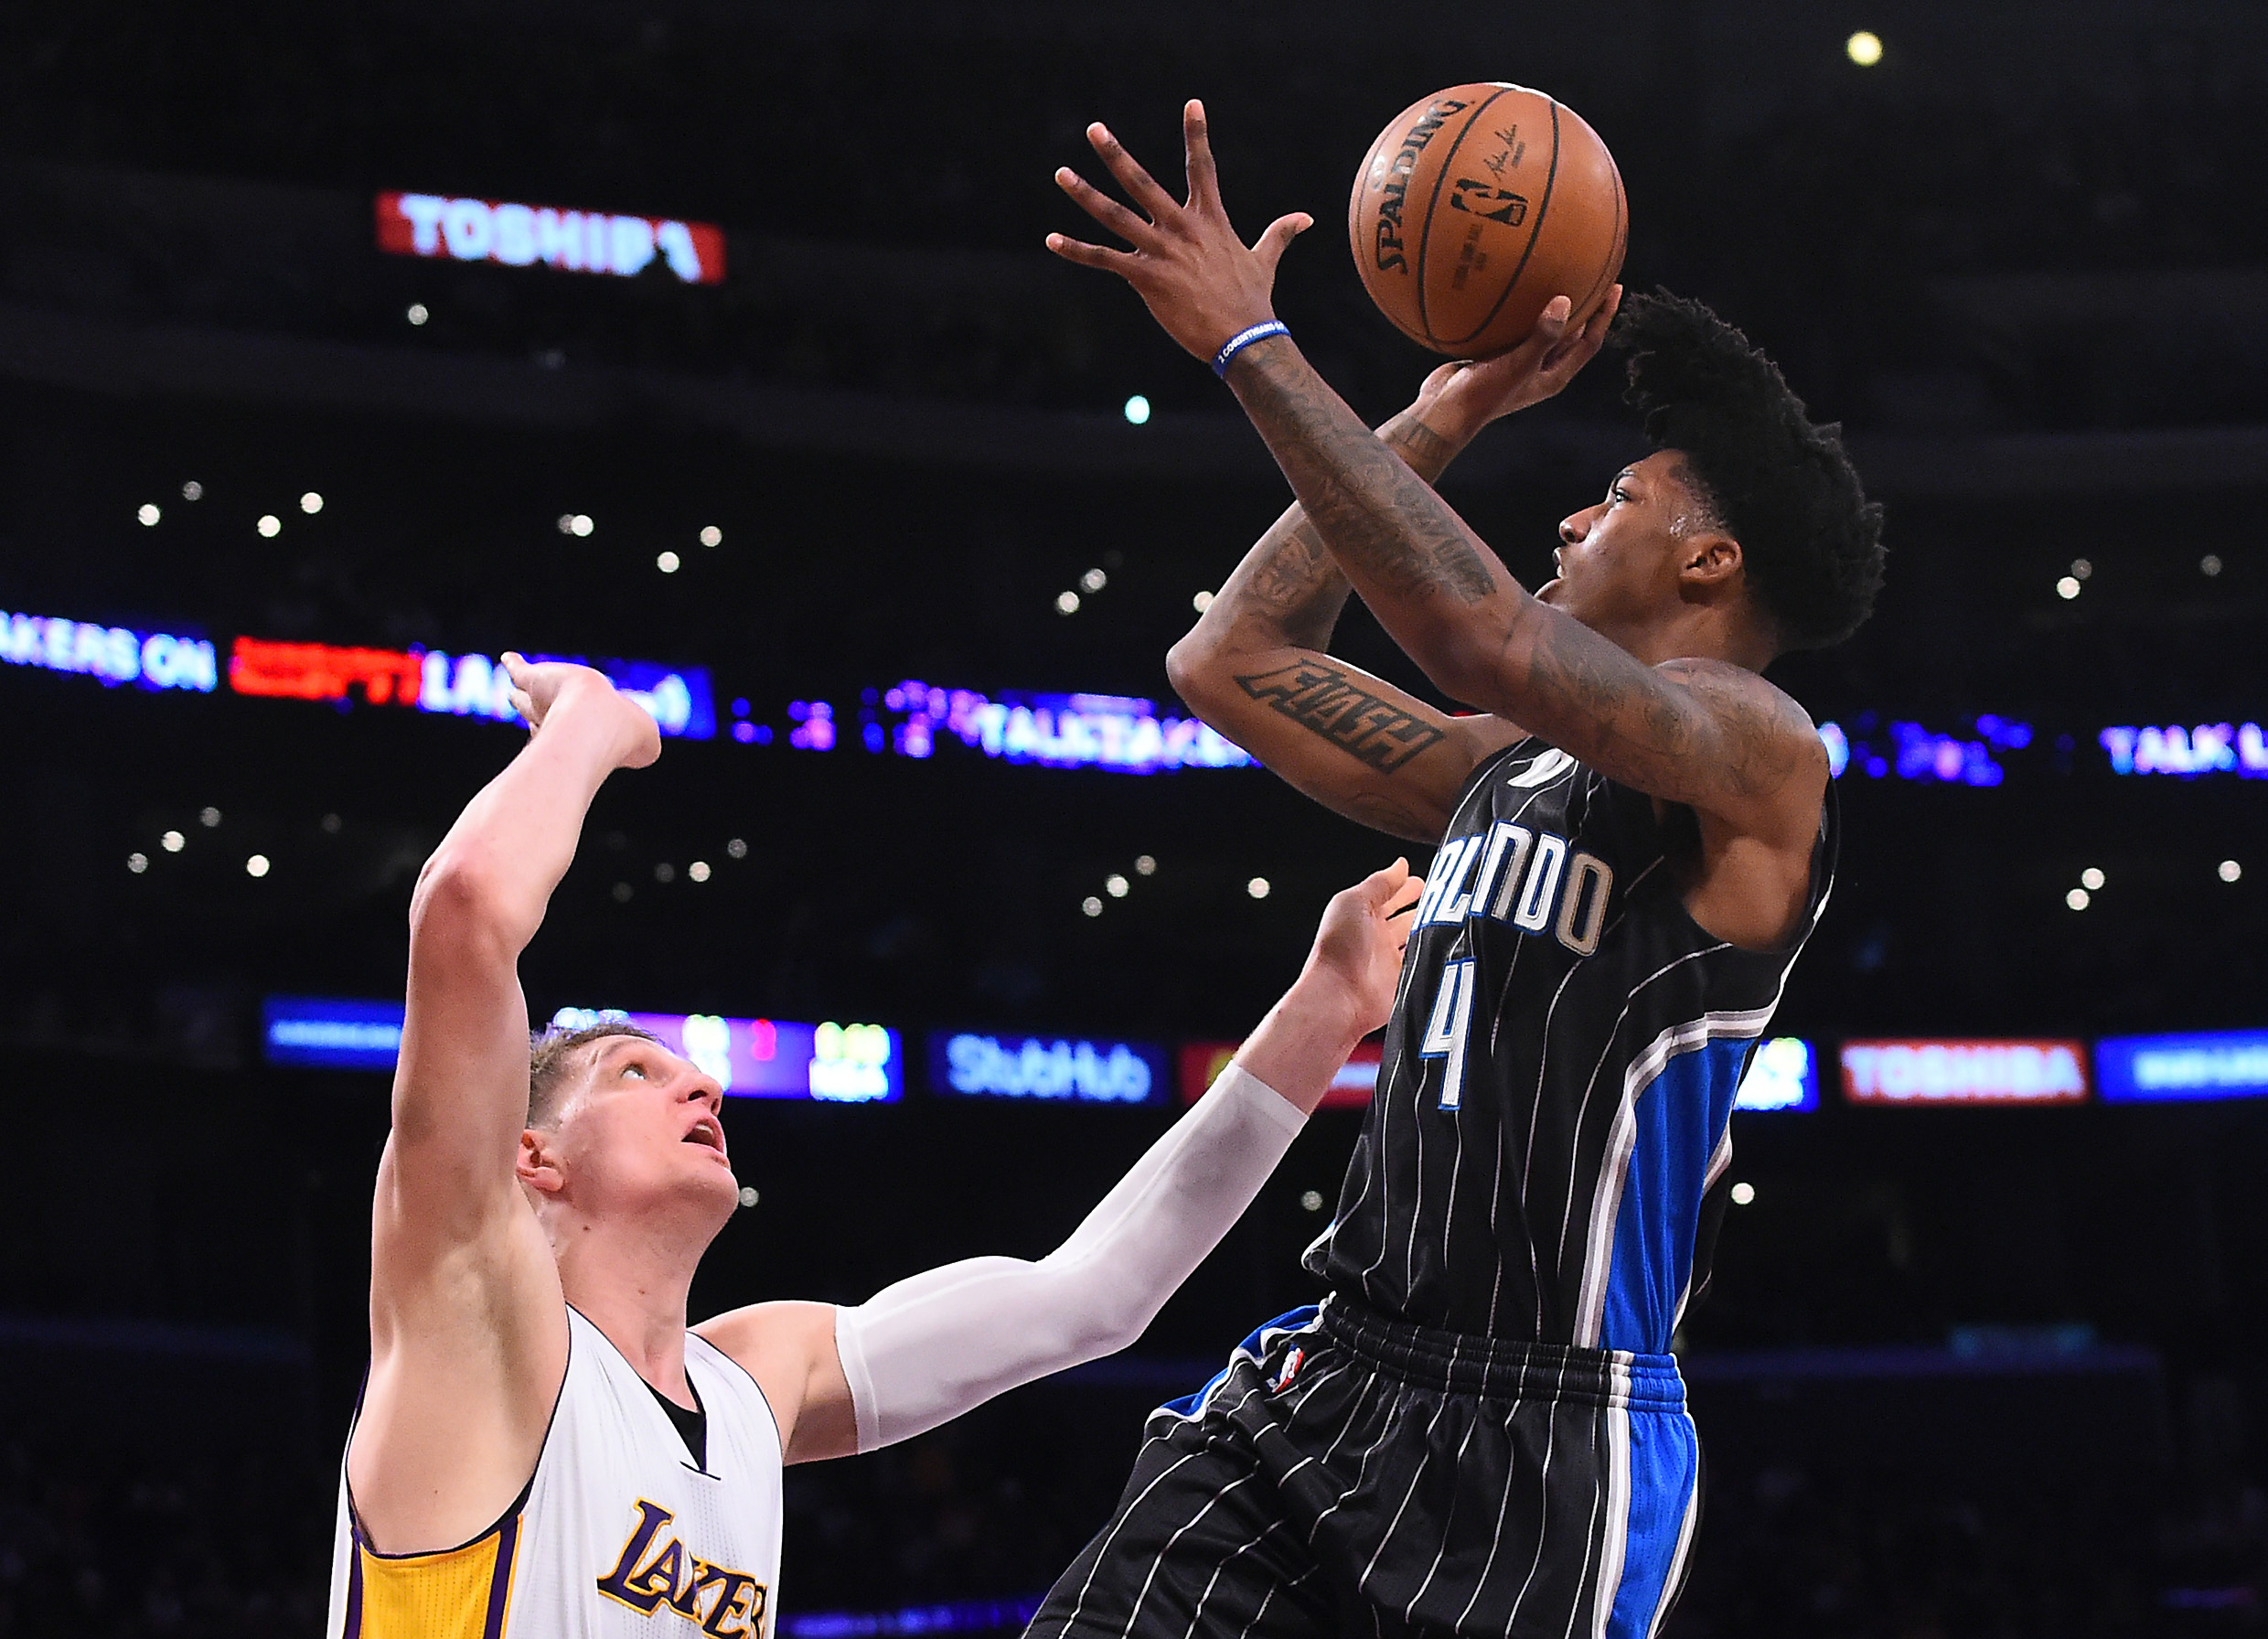 9799260-nba-orlando-magic-at-los-angeles-lakers